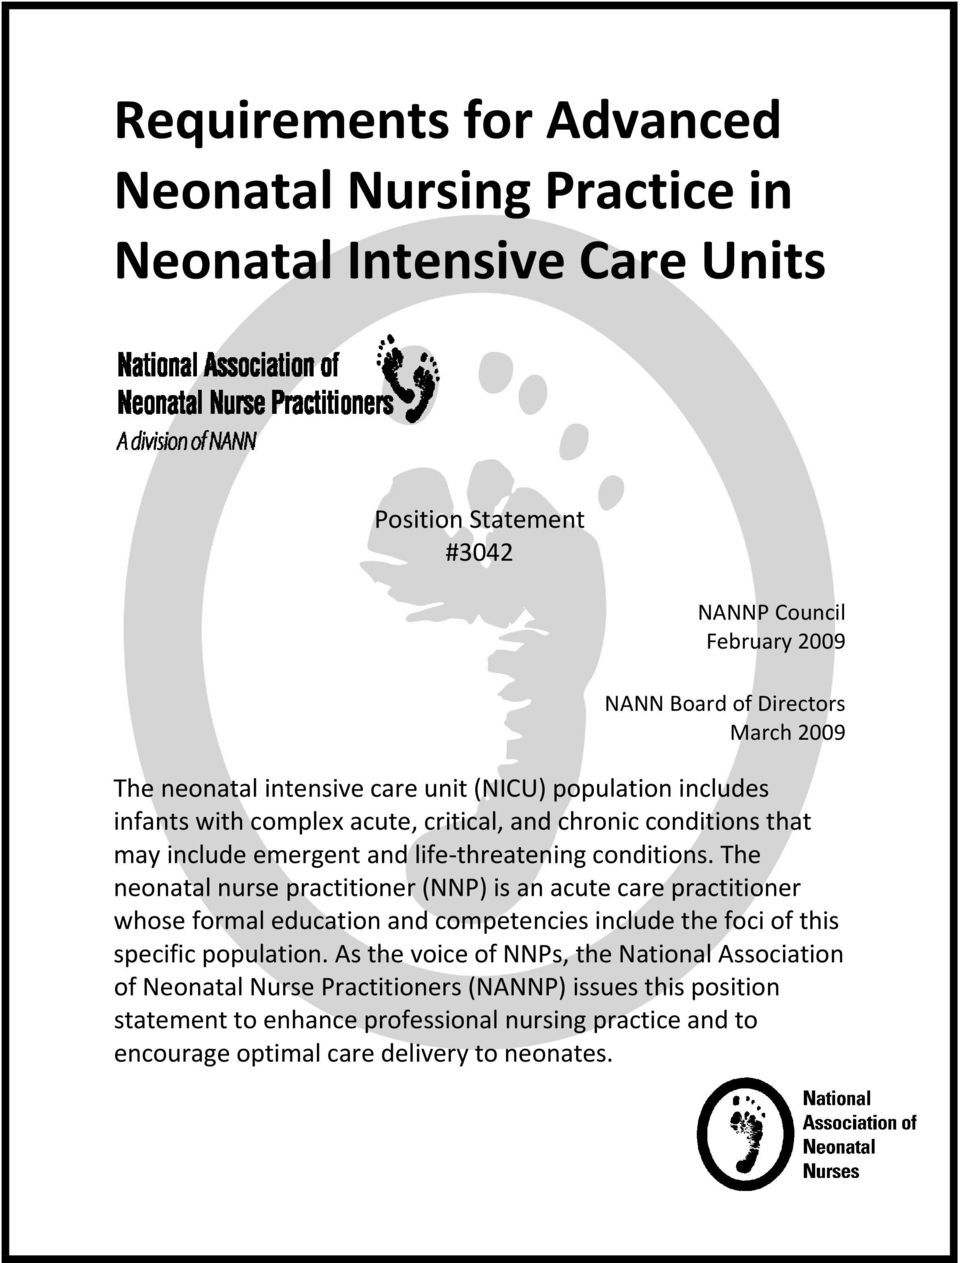 The neonatal nurse practitioner (NNP) is an acute care practitioner whose formal education and competencies include the foci of this specific population.